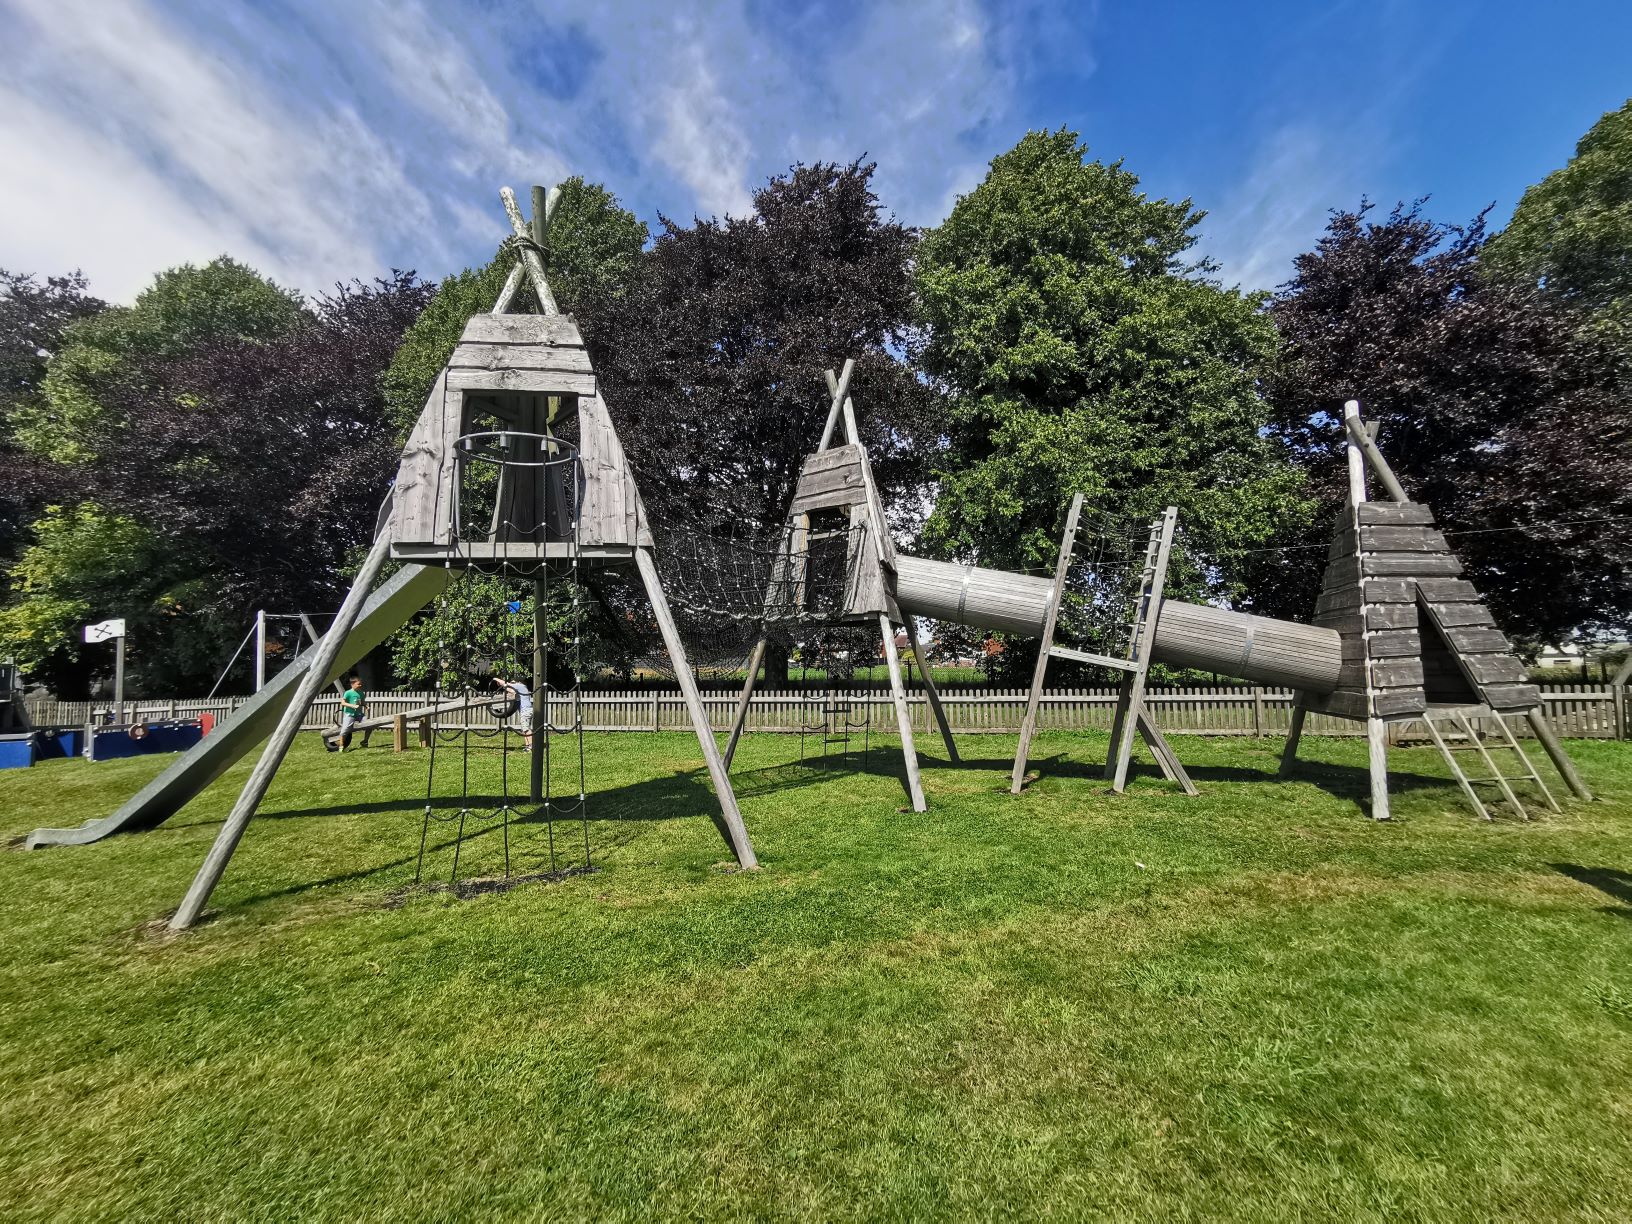 Oving Play Park